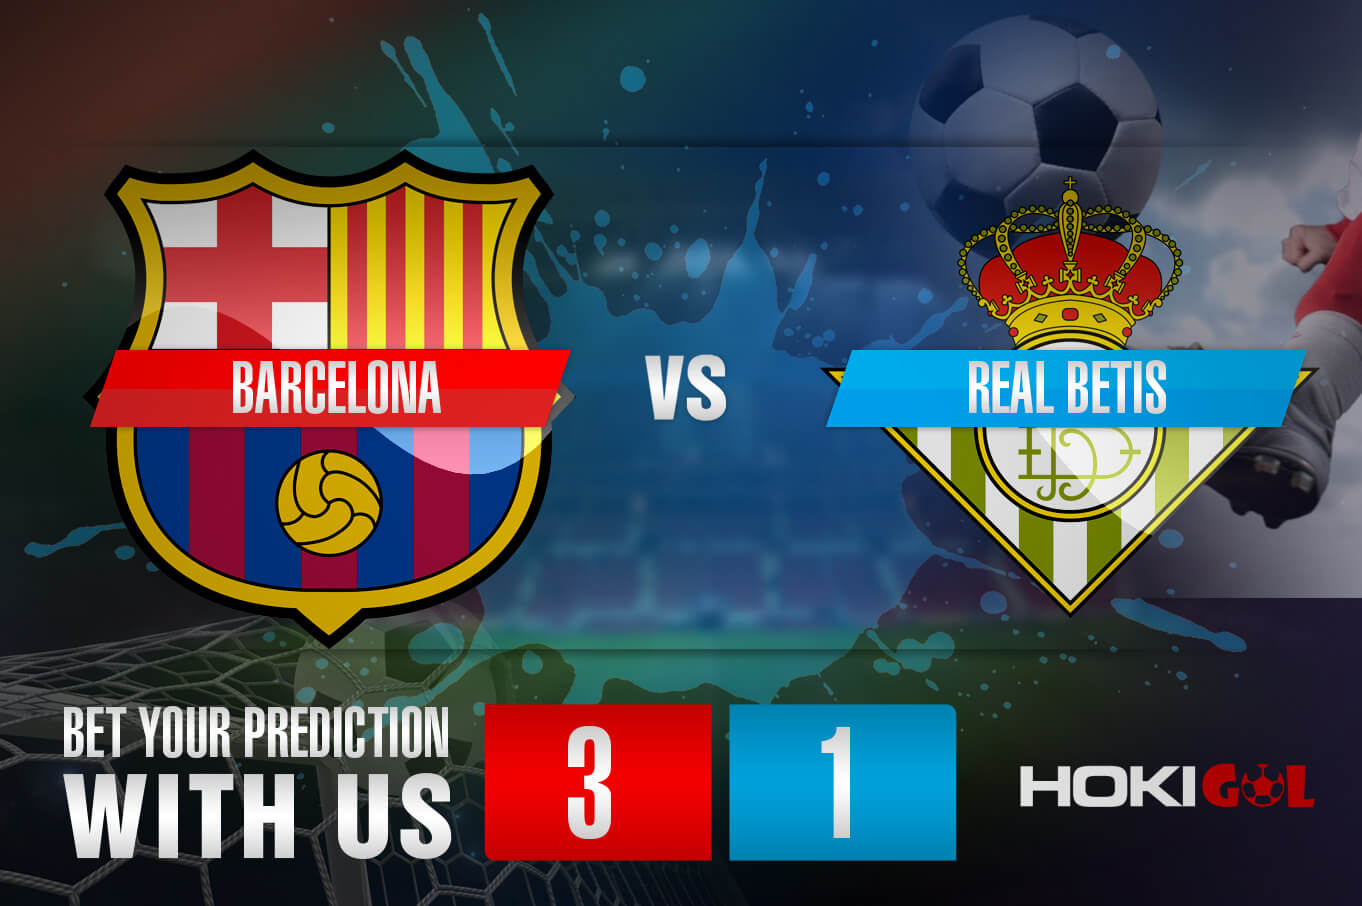 Prediksi Bola Barcelona Vs Real Betis 7 November 2020